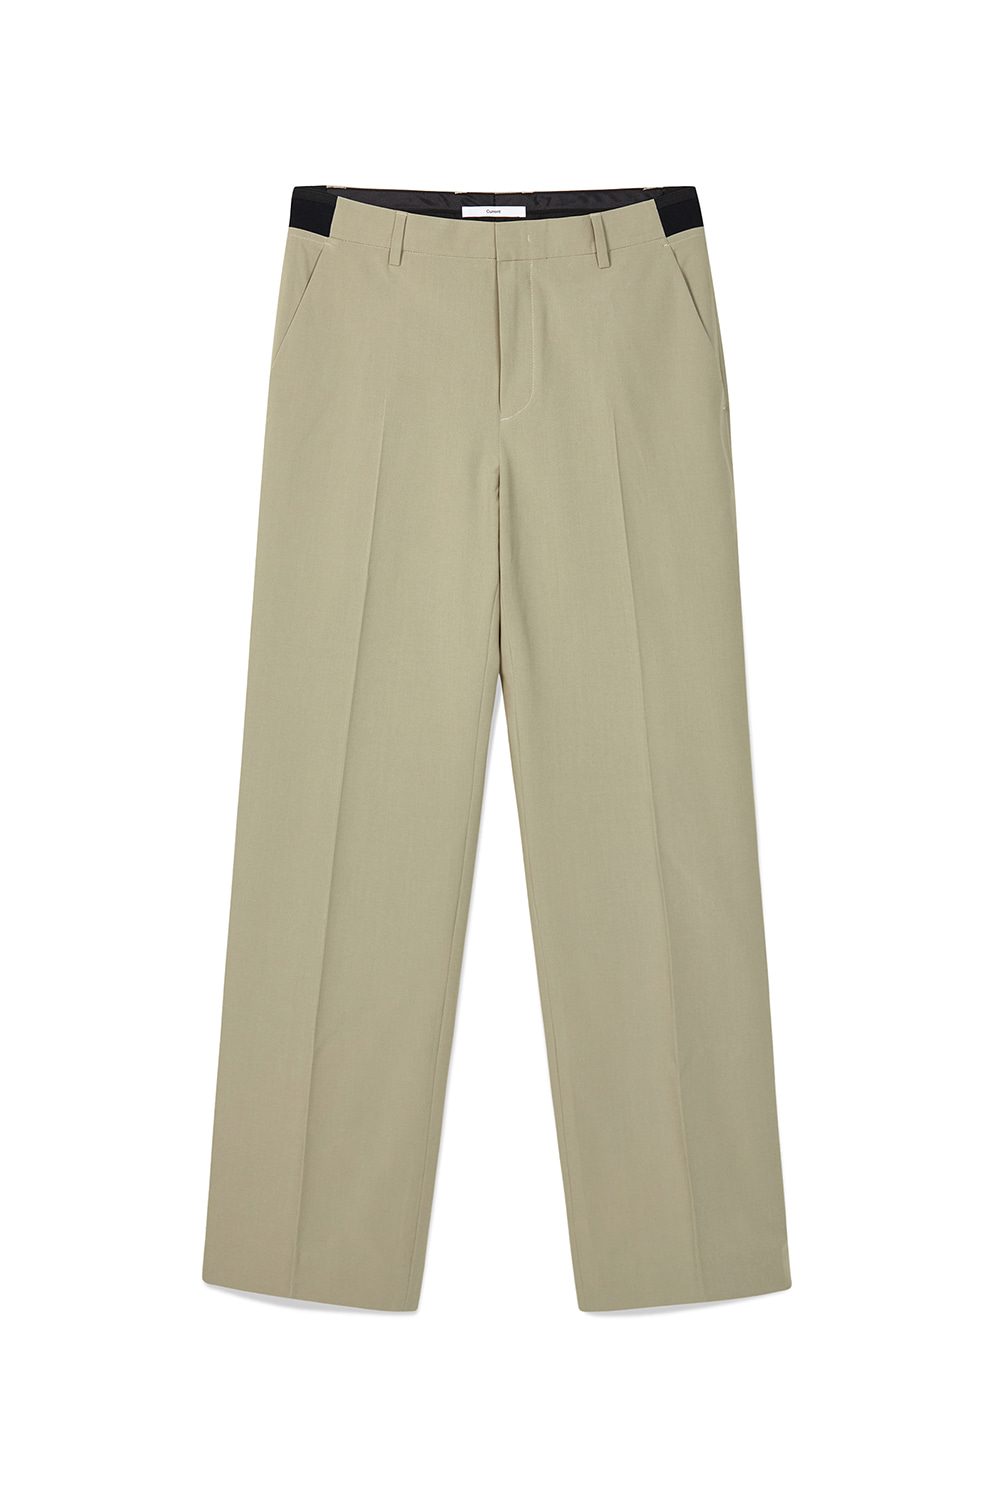 Cool Max Slacks [Beige] -30%